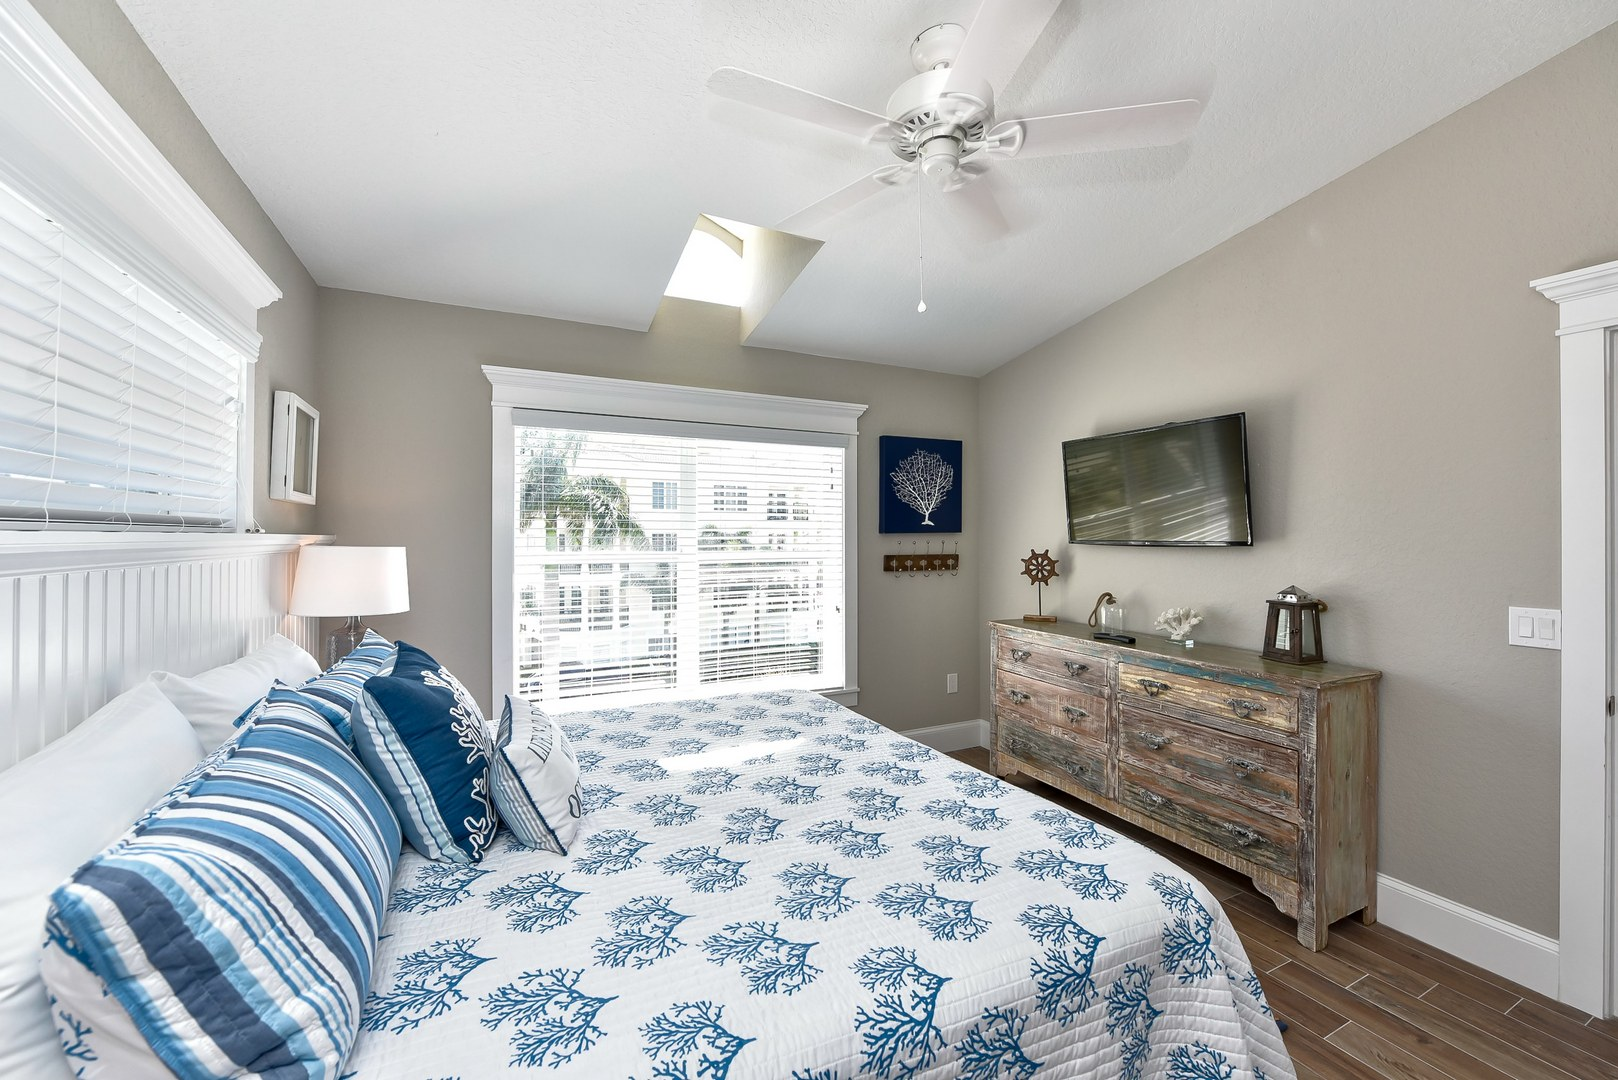 EXAMPLE - Bedroom 2 - King bed